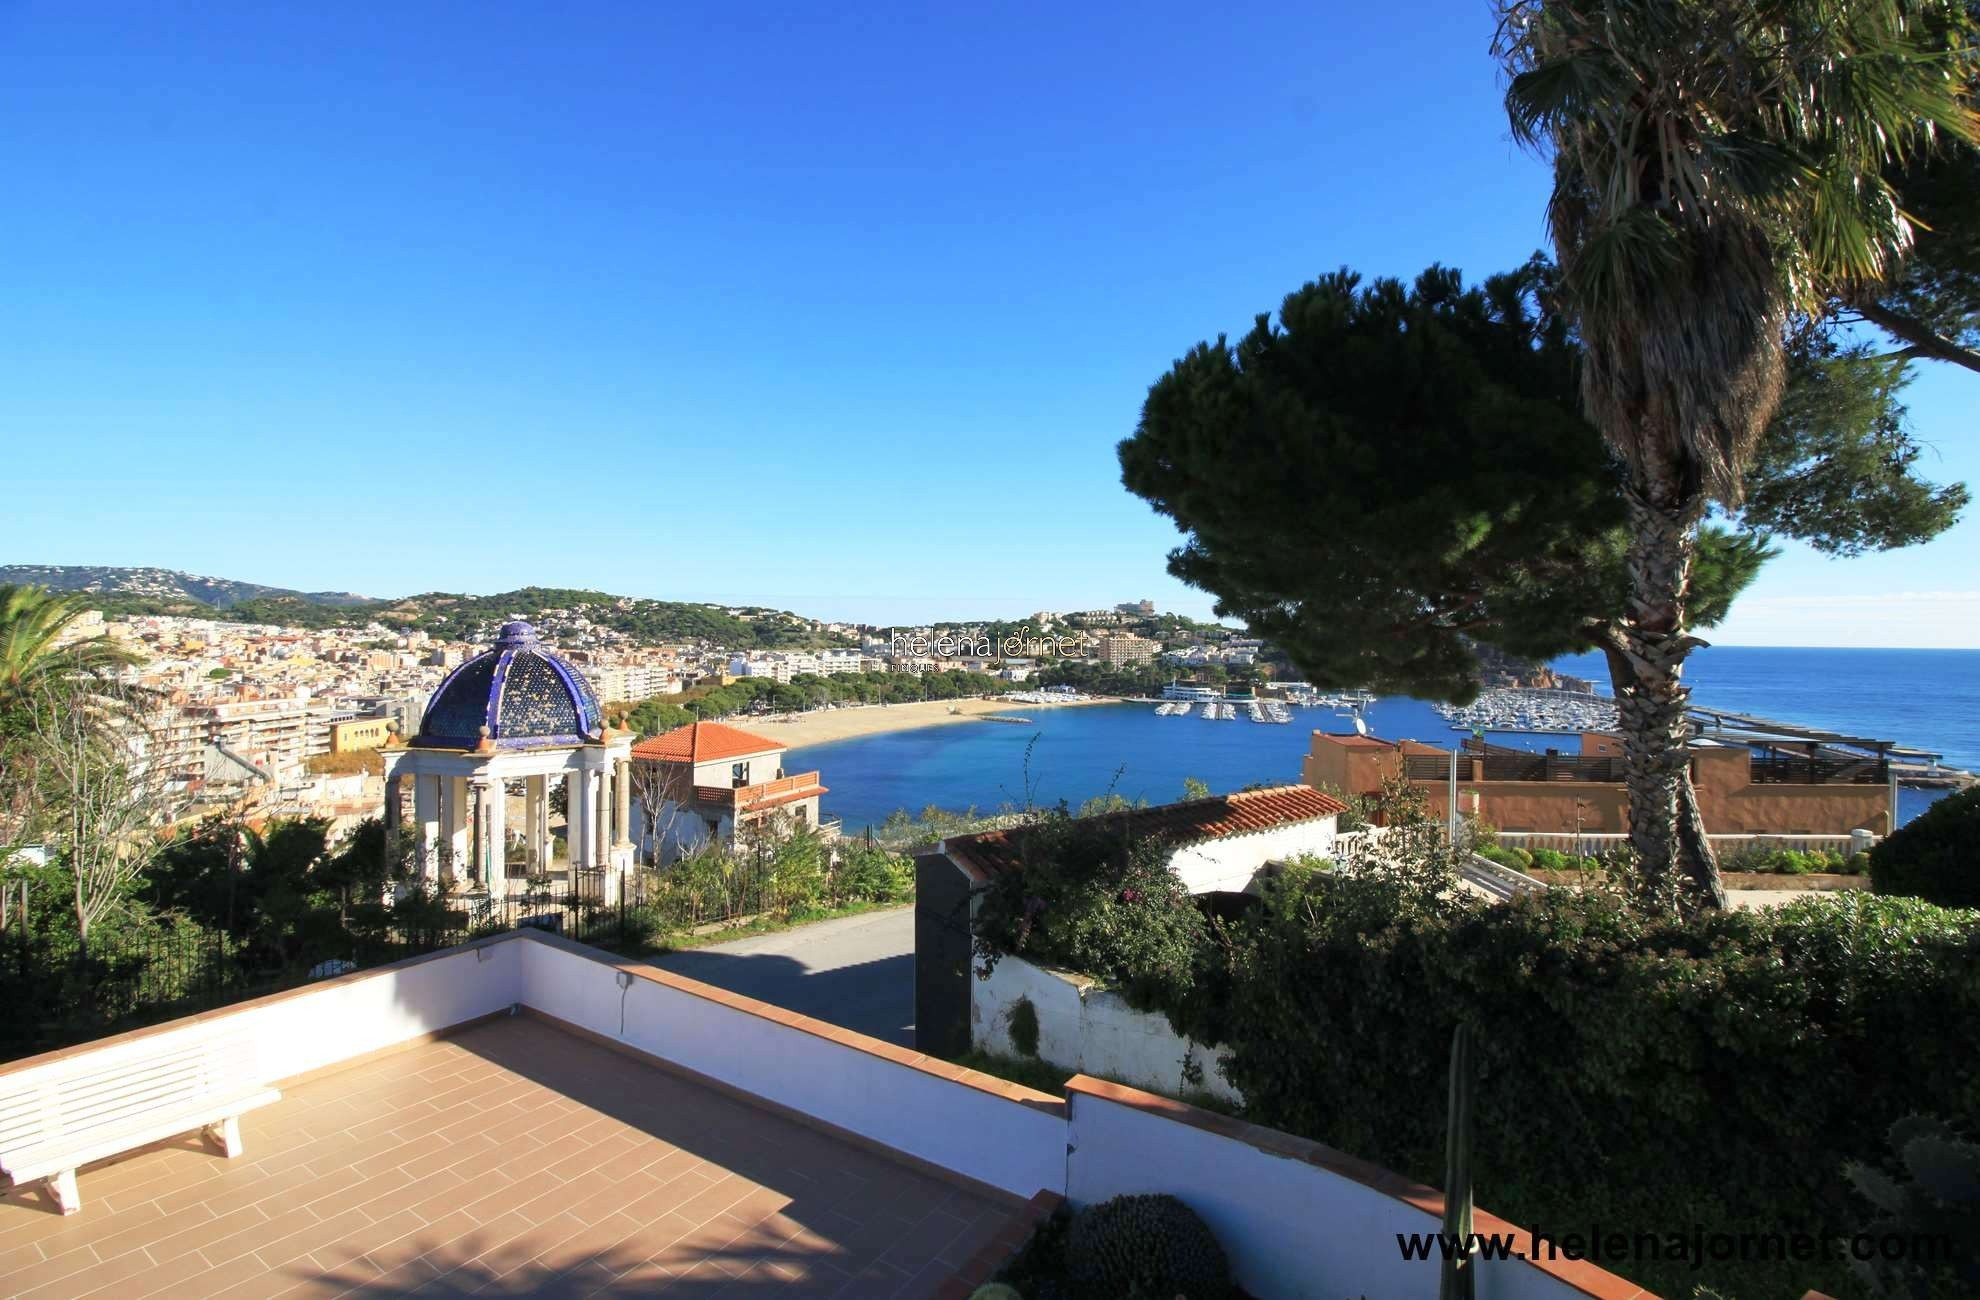 Townhouse close to the beach - 70040 Sant Elm